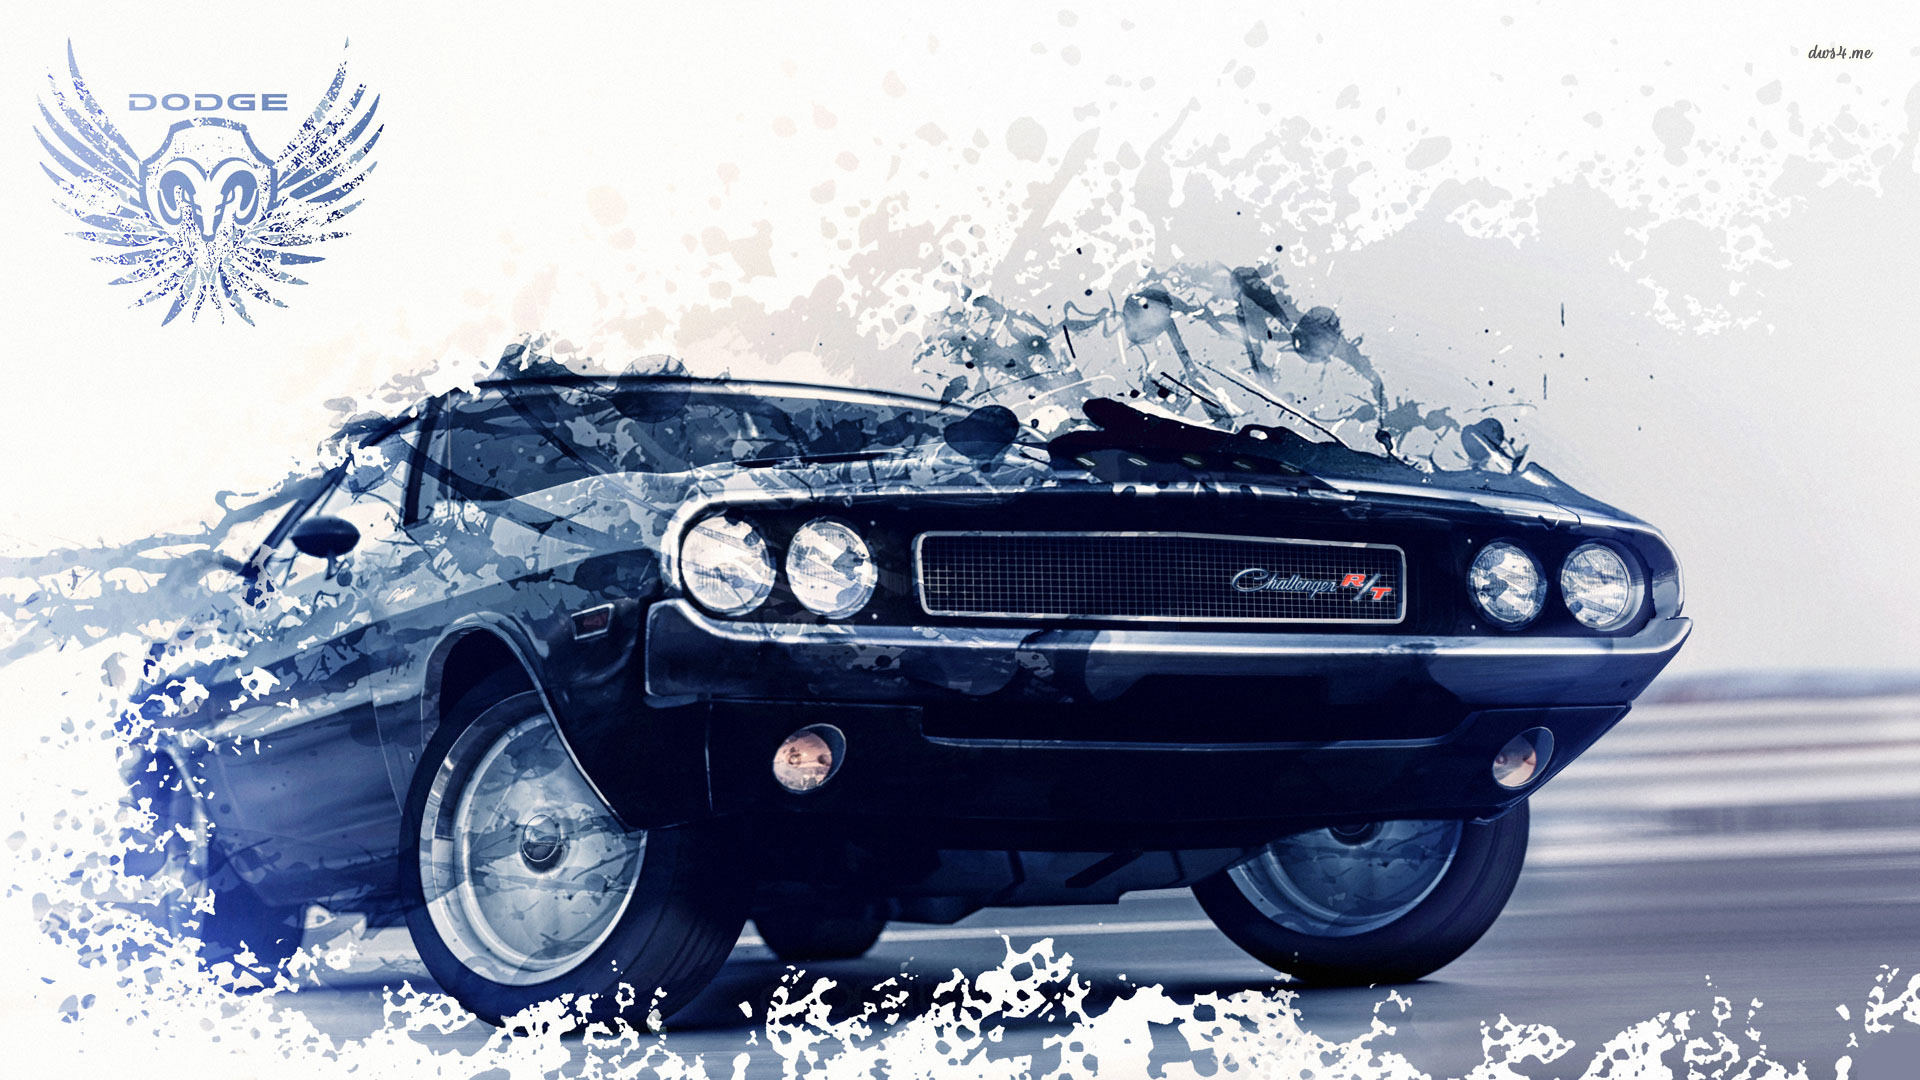 46 1970 Dodge Challenger Wallpaper Desktop On